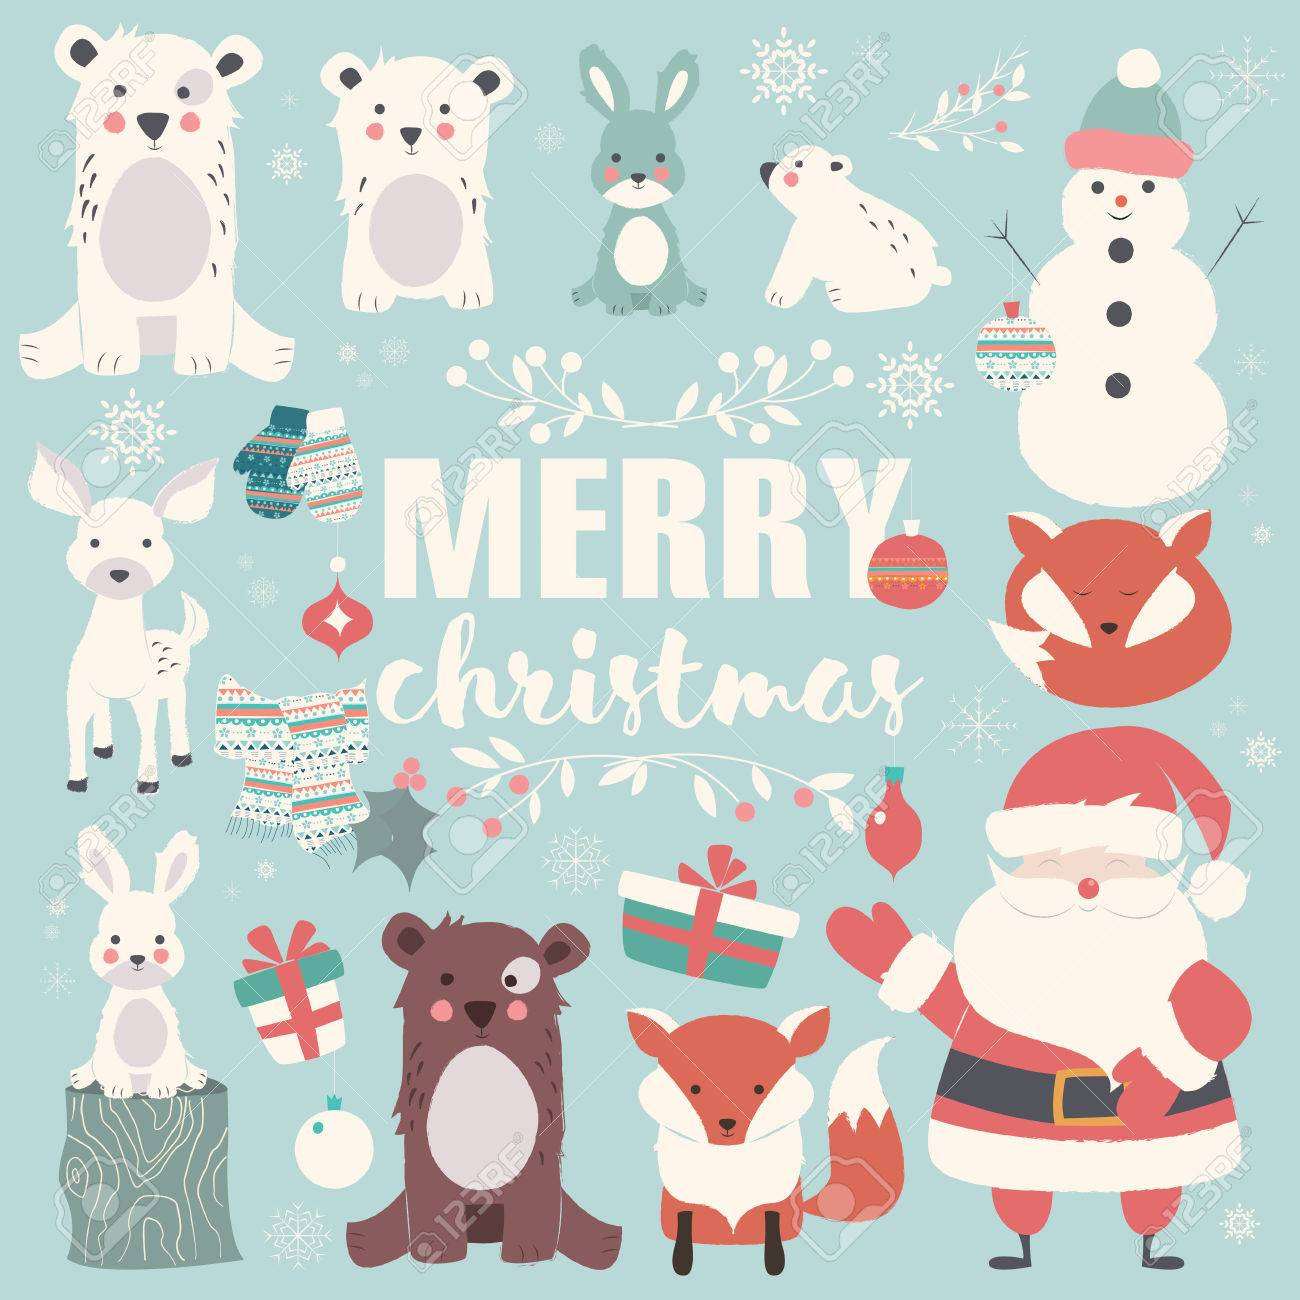 Merry Christmas Animals.Collection Of Christmas Animals Lettering And Santa Claus Merry